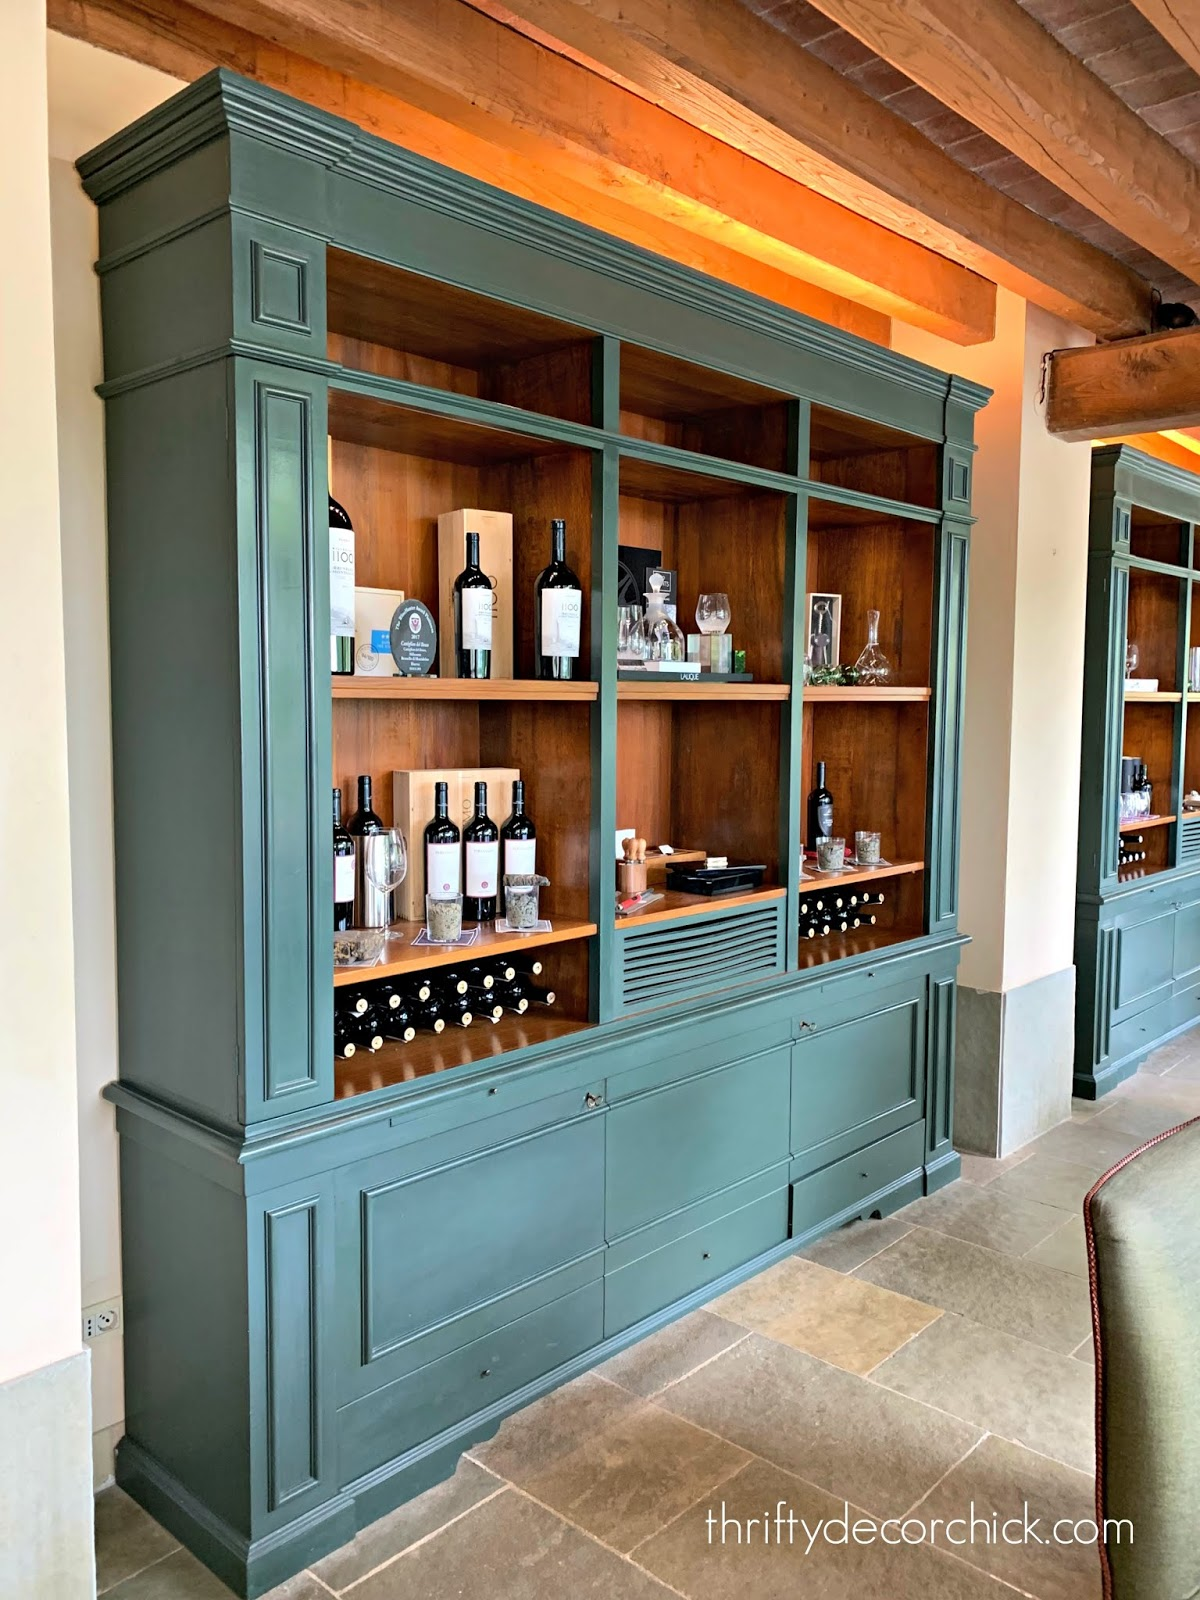 Dark green cabinetry with wood interior